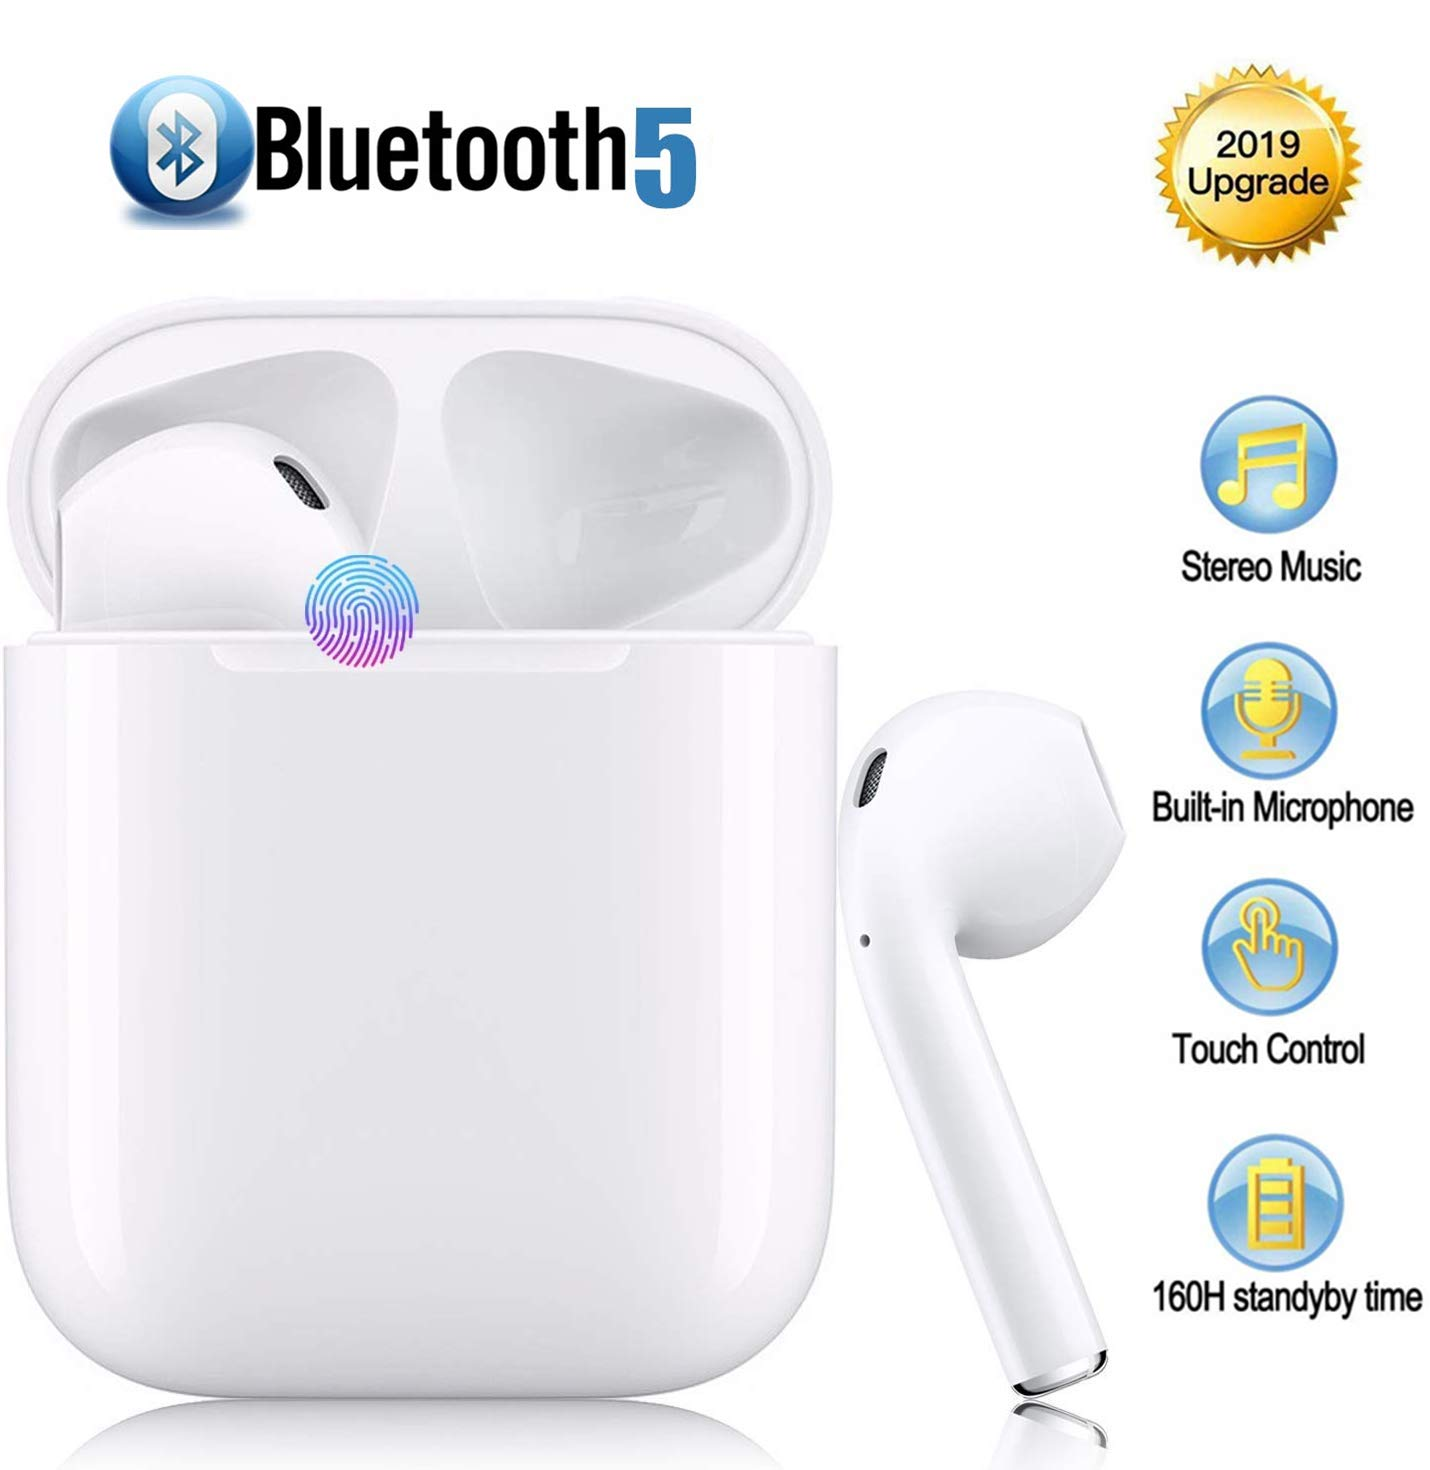 TWS Cordless Earphones Wireless Earbuds Mini Sports Headphones Stereo Earpieces Bluetooth Headsets for iOS XMAS XR X 8 7 6 Plus and Android Galaxy Sumsung Note S7 S8 S9 S10 Plus